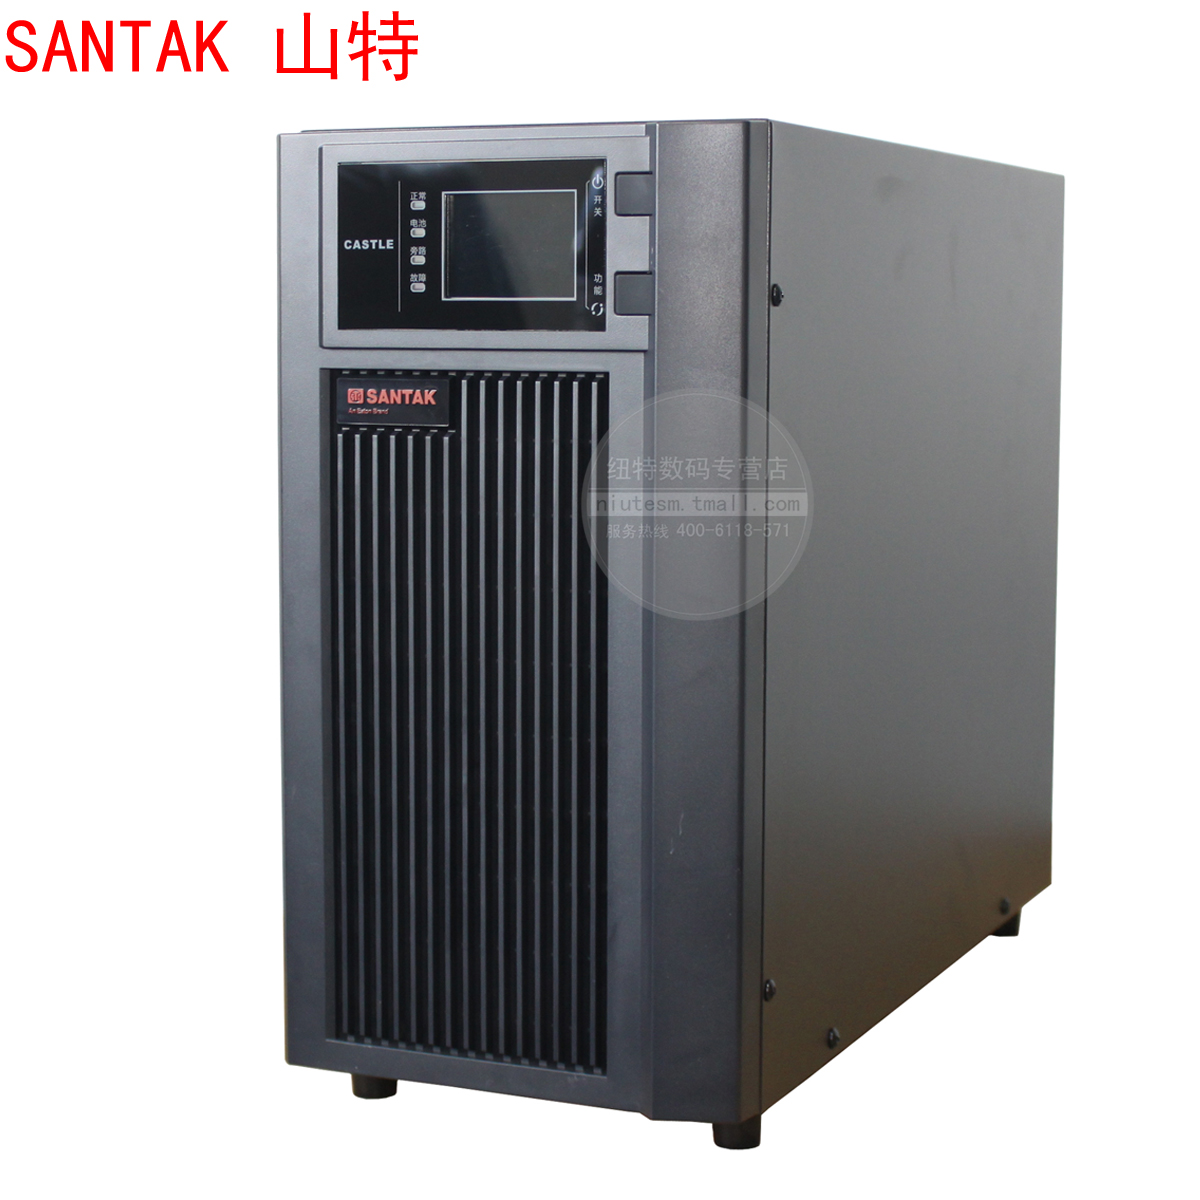 Shante SANTAK UPS Uninterruptible Power Supply C6KS Standby Extended 2 Hours Monitoring Room 6KVA 5400W